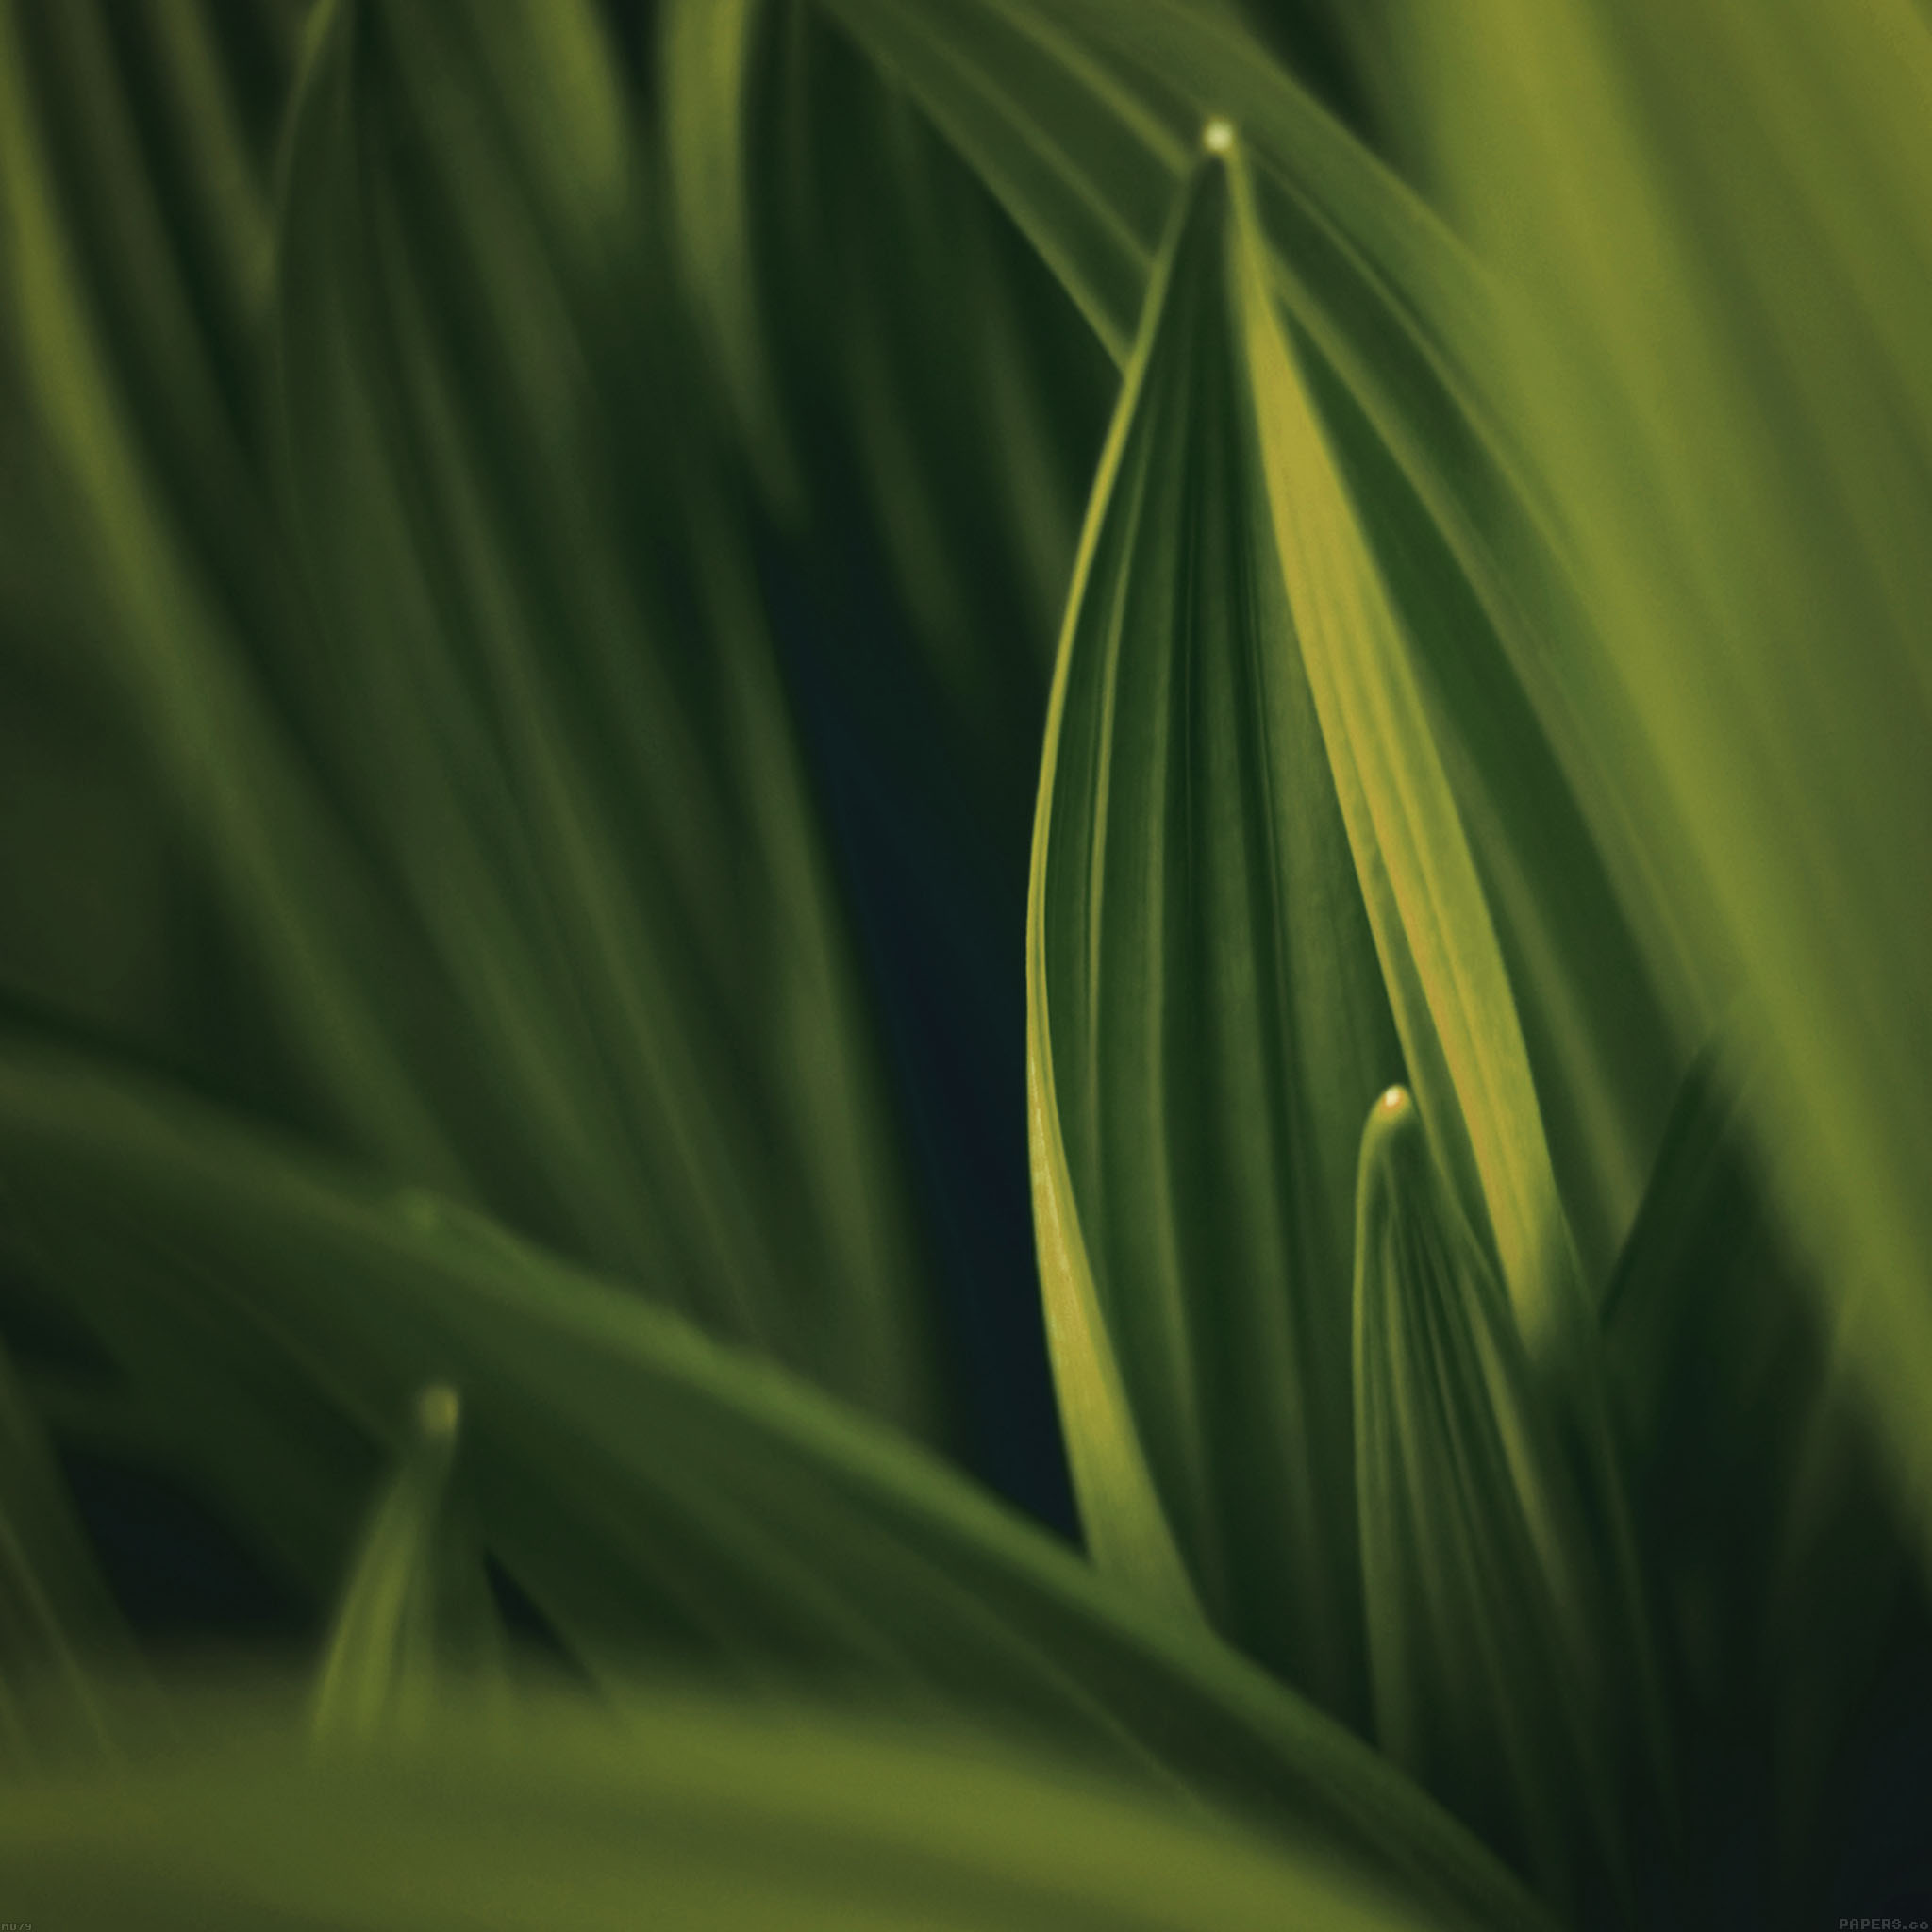 Md79-leaf-nature-yellow